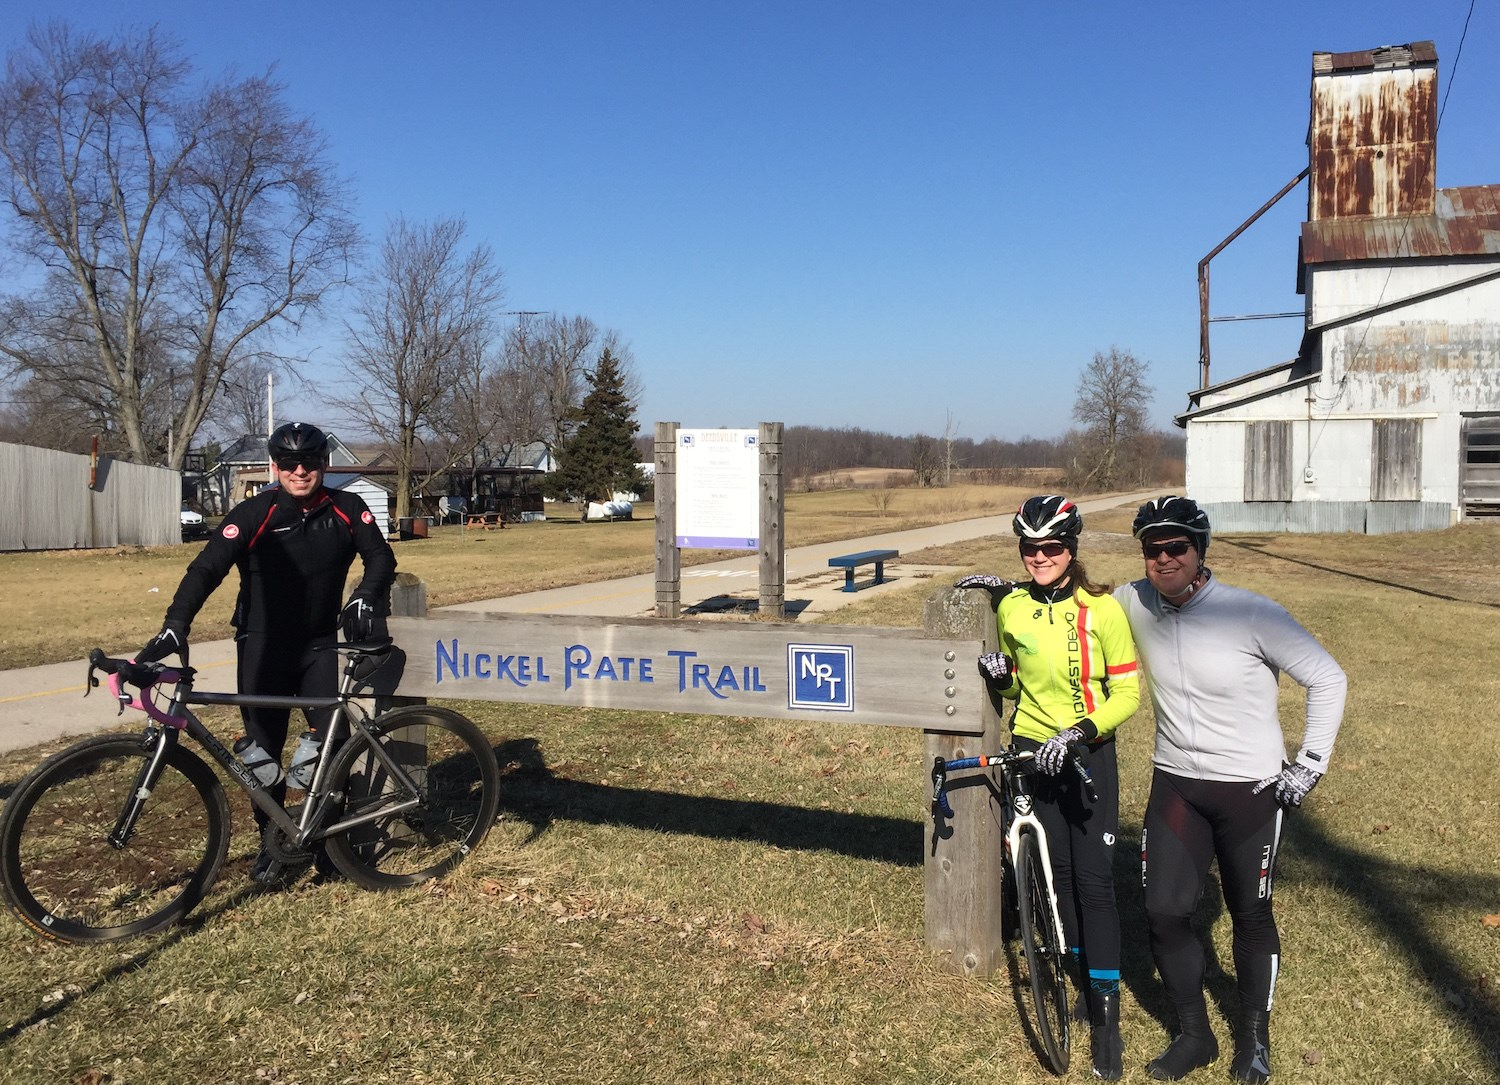 Indiana's Nickel Plate Trail